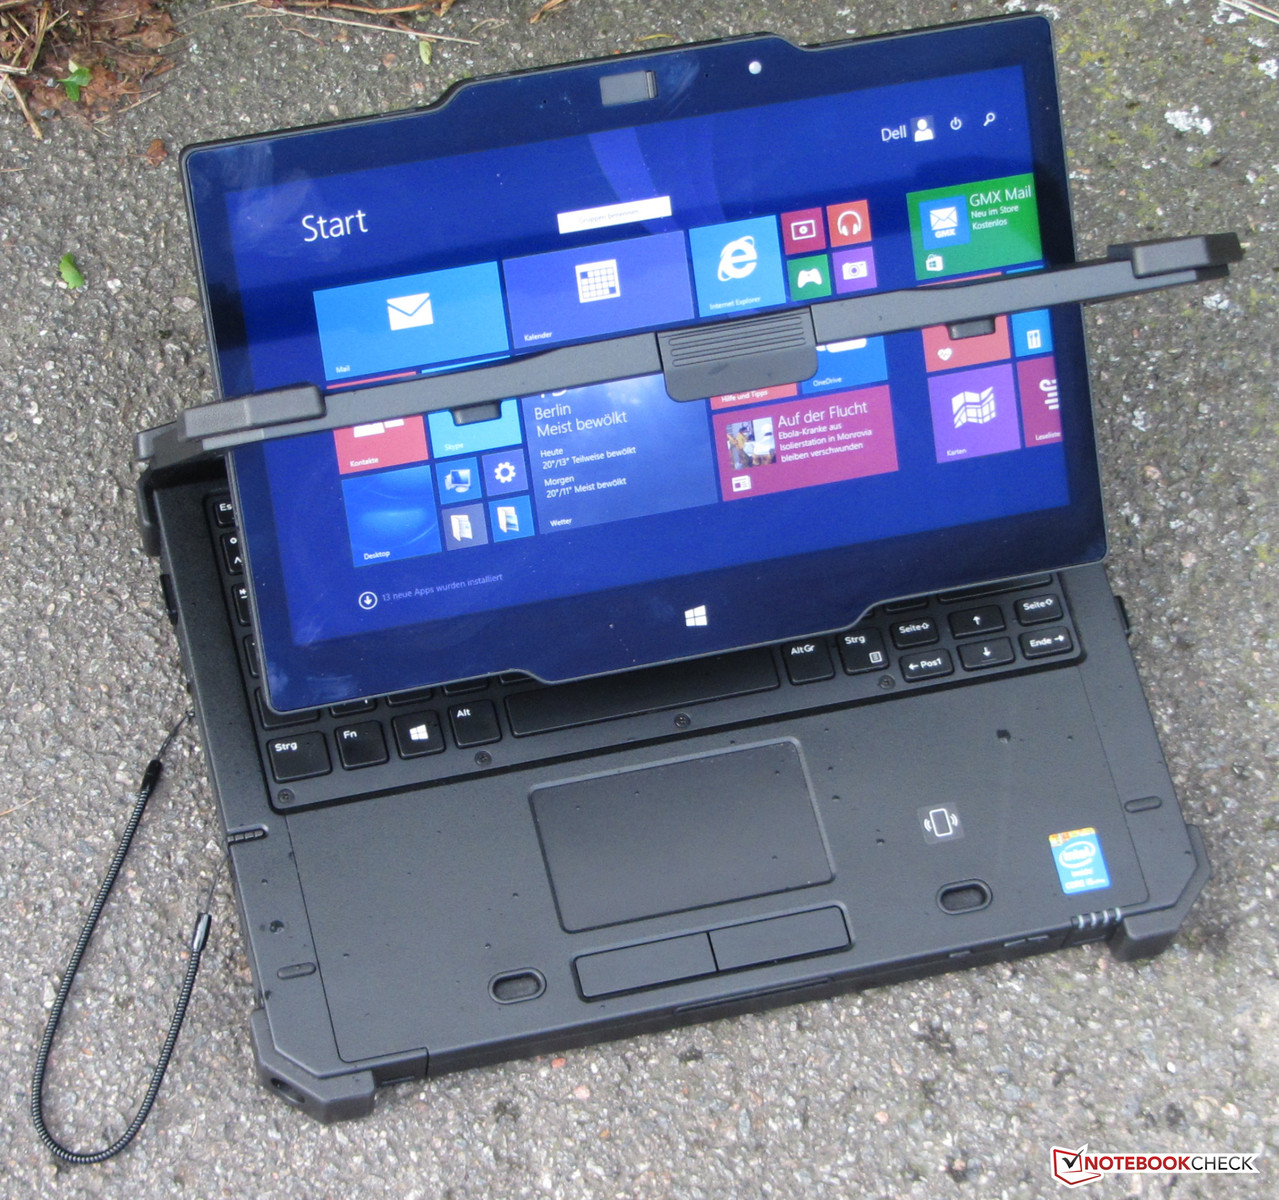 dell latitude 12 rugged extreme convertible review - notebookcheck